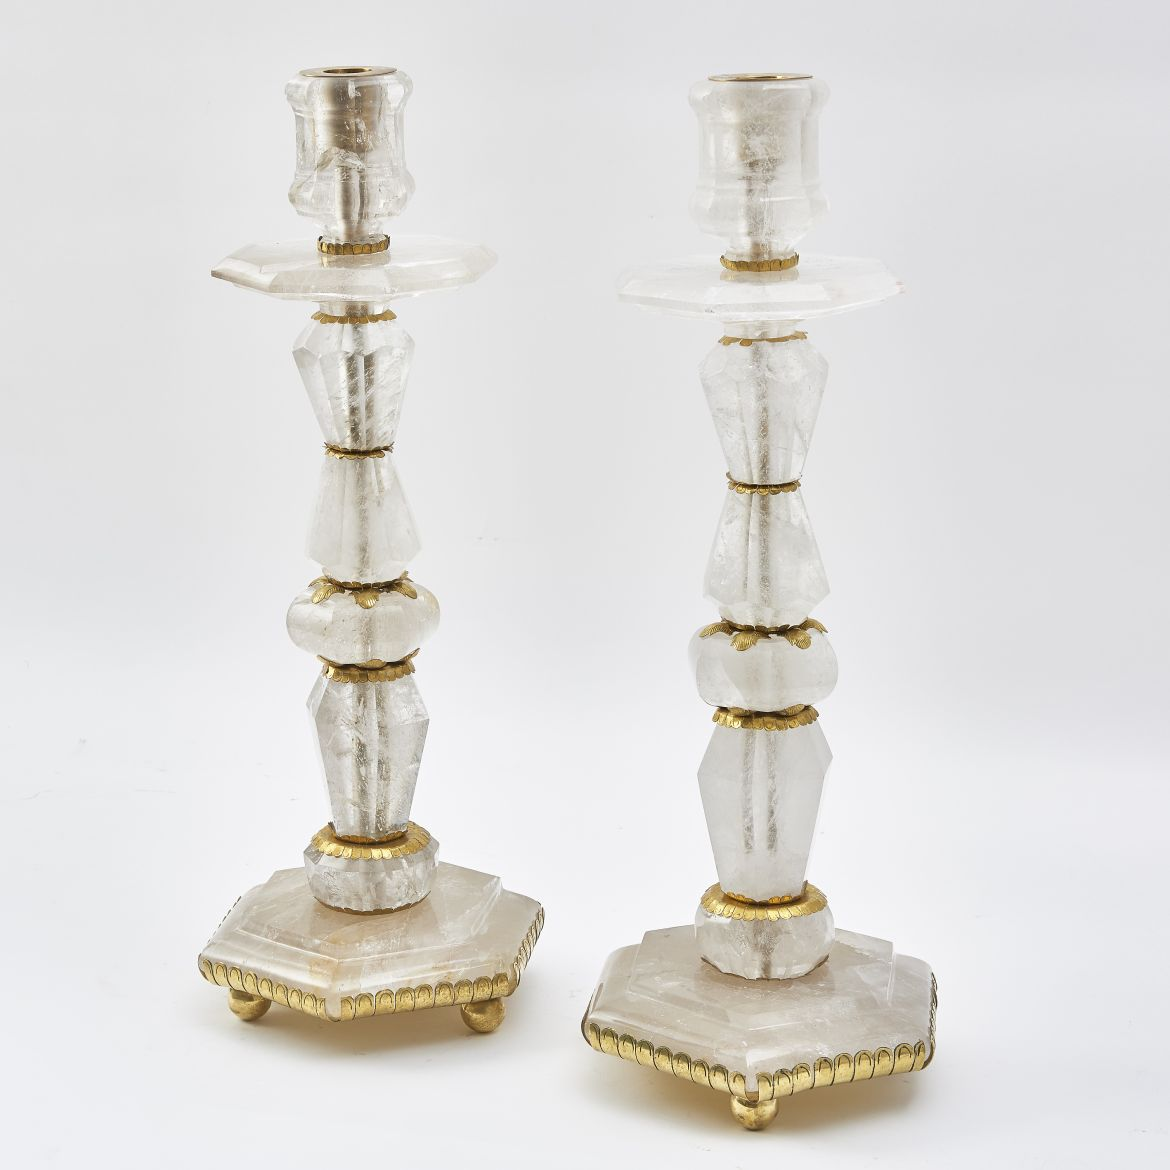 Baroque Style Rock Crystal Candlesticks